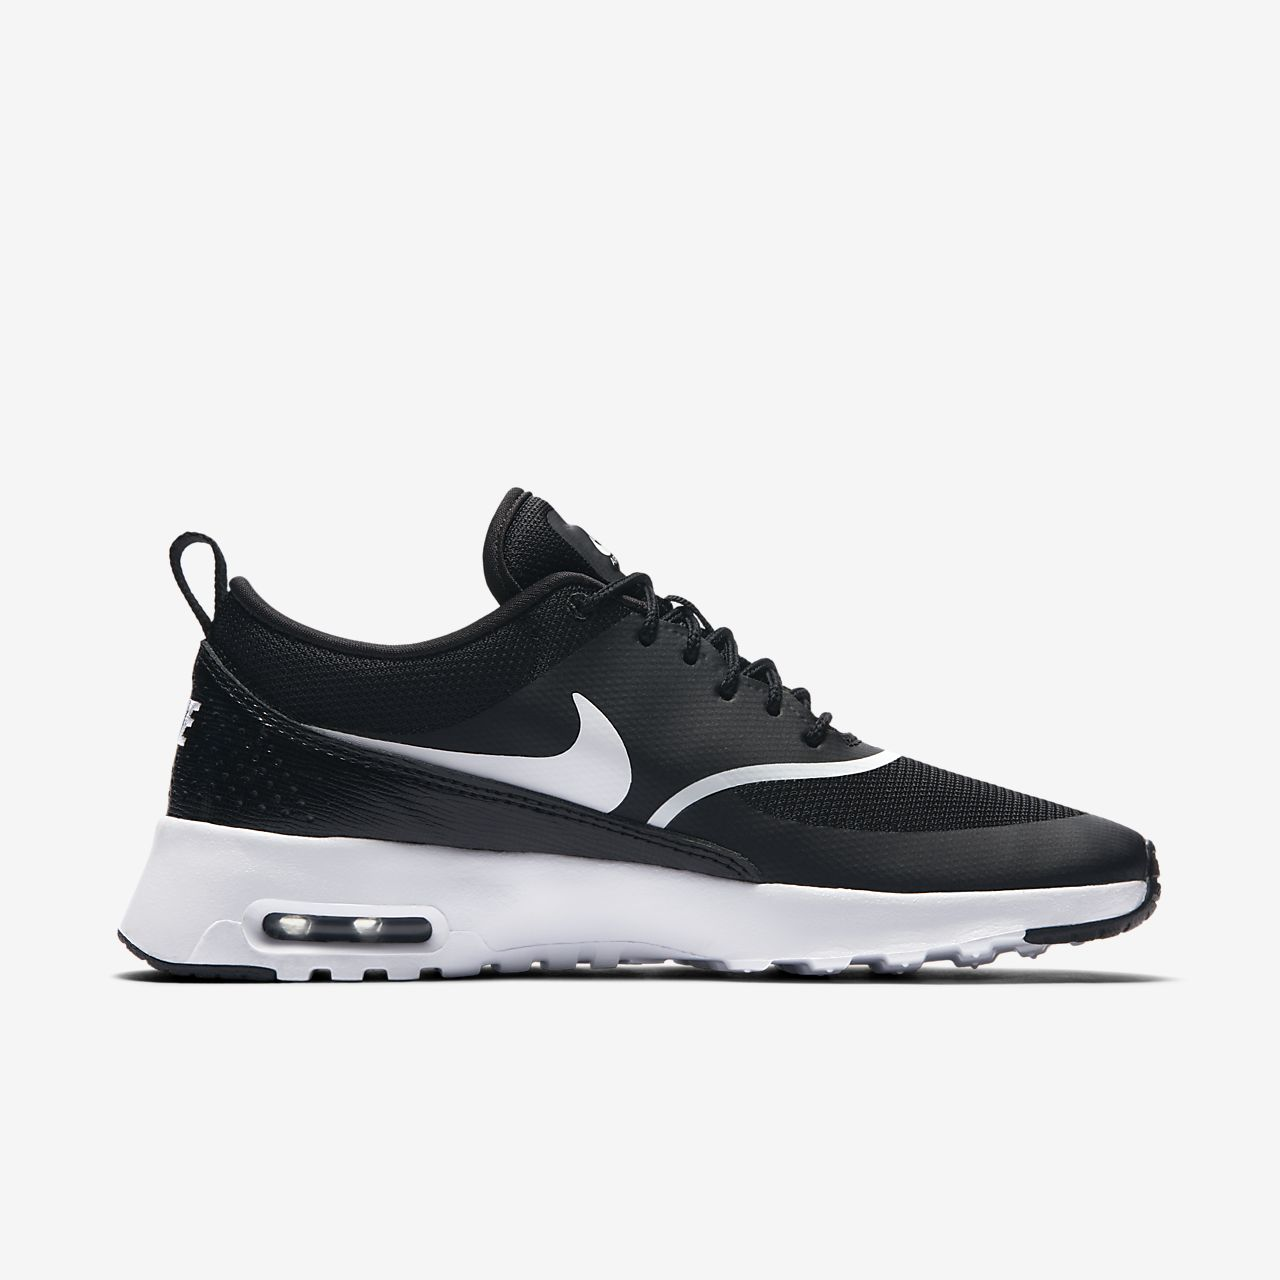 79415c3a958 Nike Air Max Thea Women s Shoe. Nike.com BE